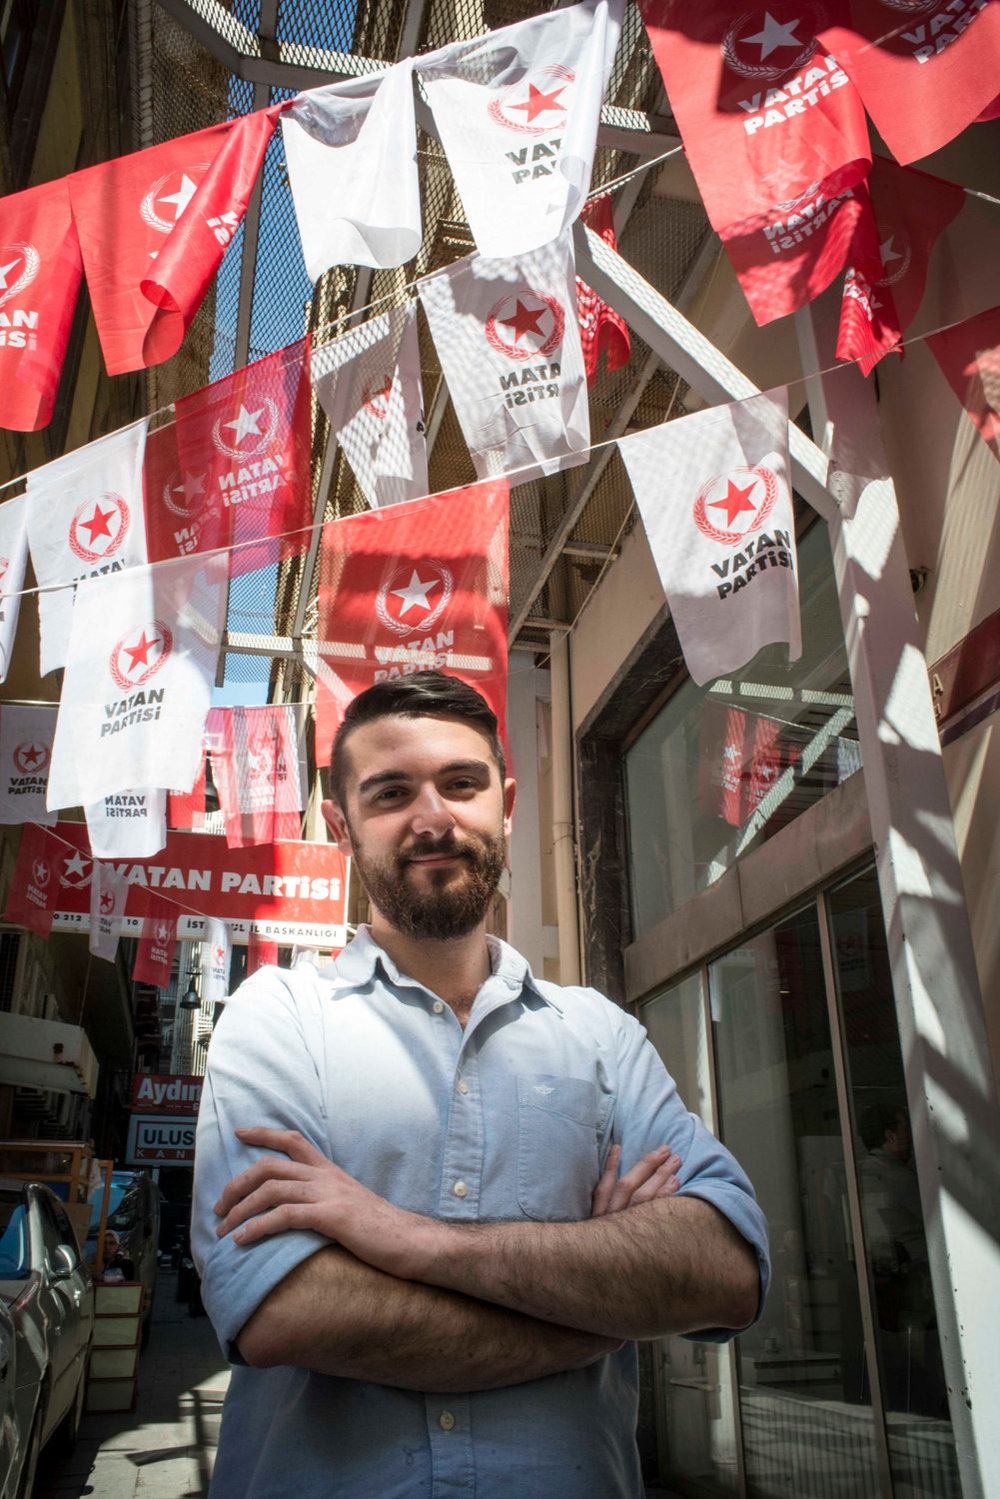 Engin Onder, Young Global Leader from Turkey. Photographed in Istanbul in front of the political flags for one of the parties running in the general election on May 5th 2015 for TIME Magazine.